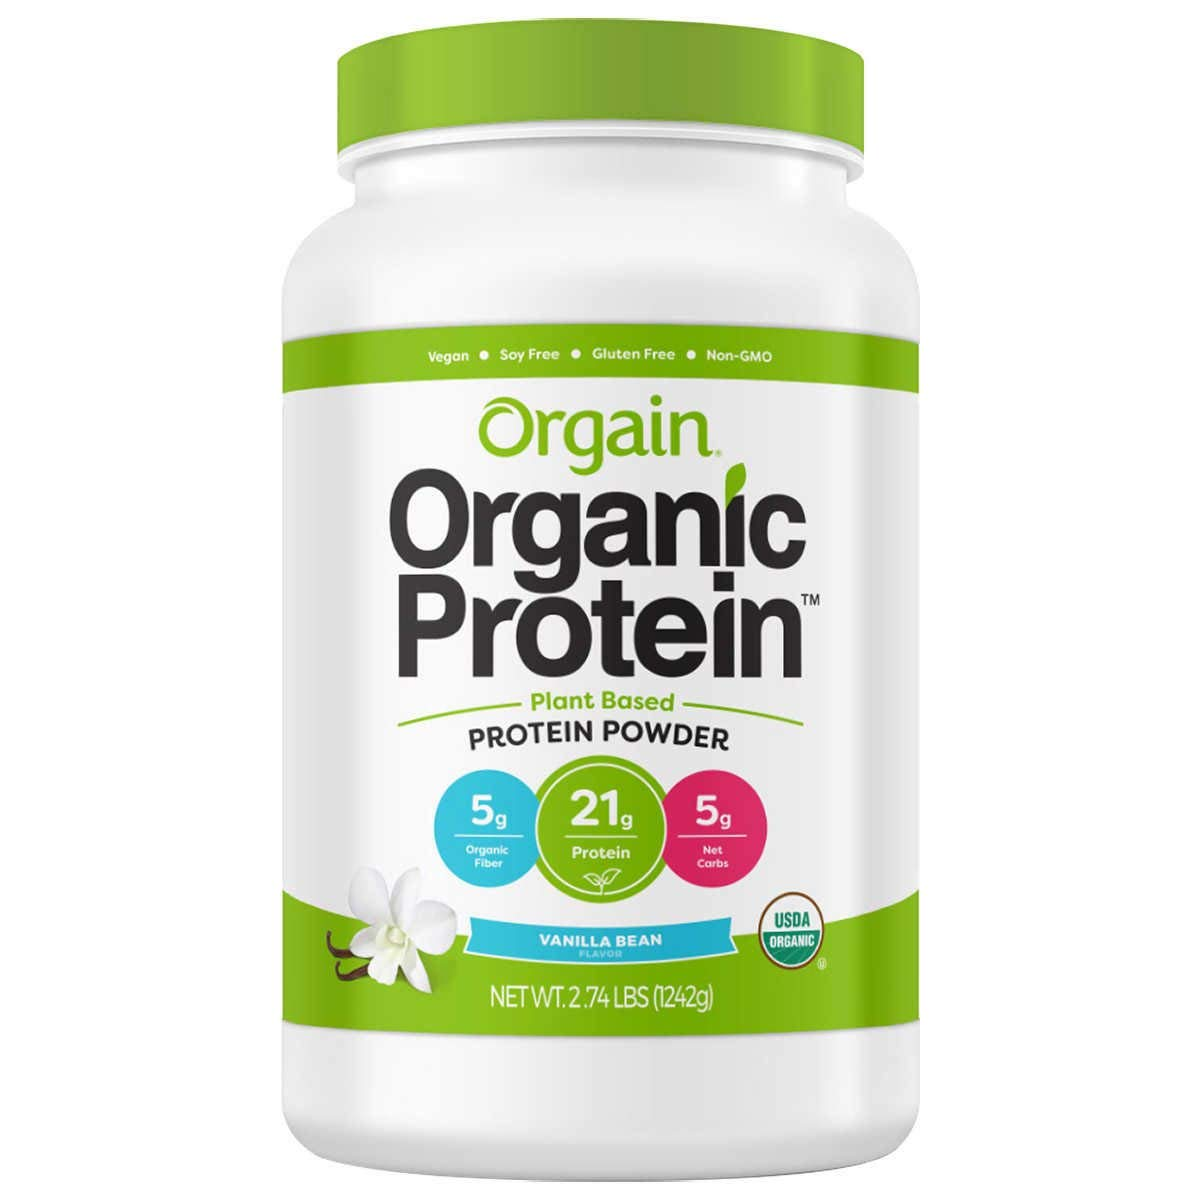 Orgain Organic Plant Based Protein Powder, Vanilla Bean, Vegan, Non-GMO, Gluten Free, 2.74 Pound, 1 Count, Packaging May Vary